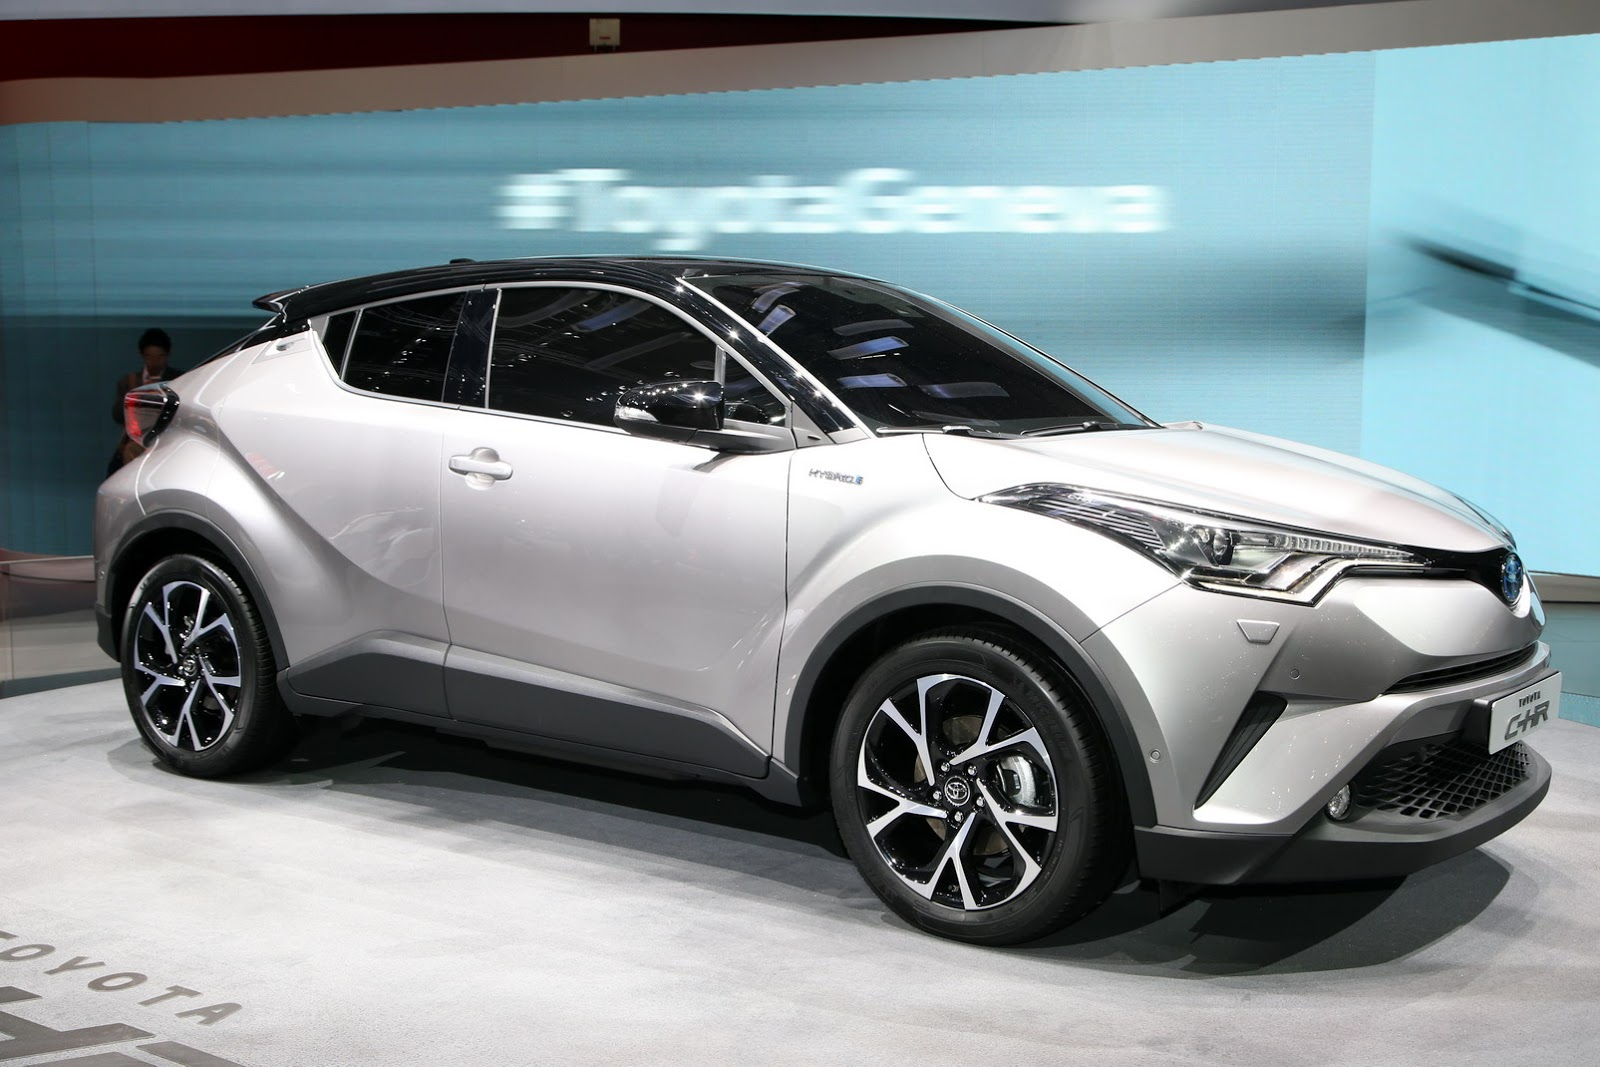 New Toyota C Hr Gets 1 2l Turbo 2 0l And 1 8l Hybrid Powertrains New Pics Carscoops Com